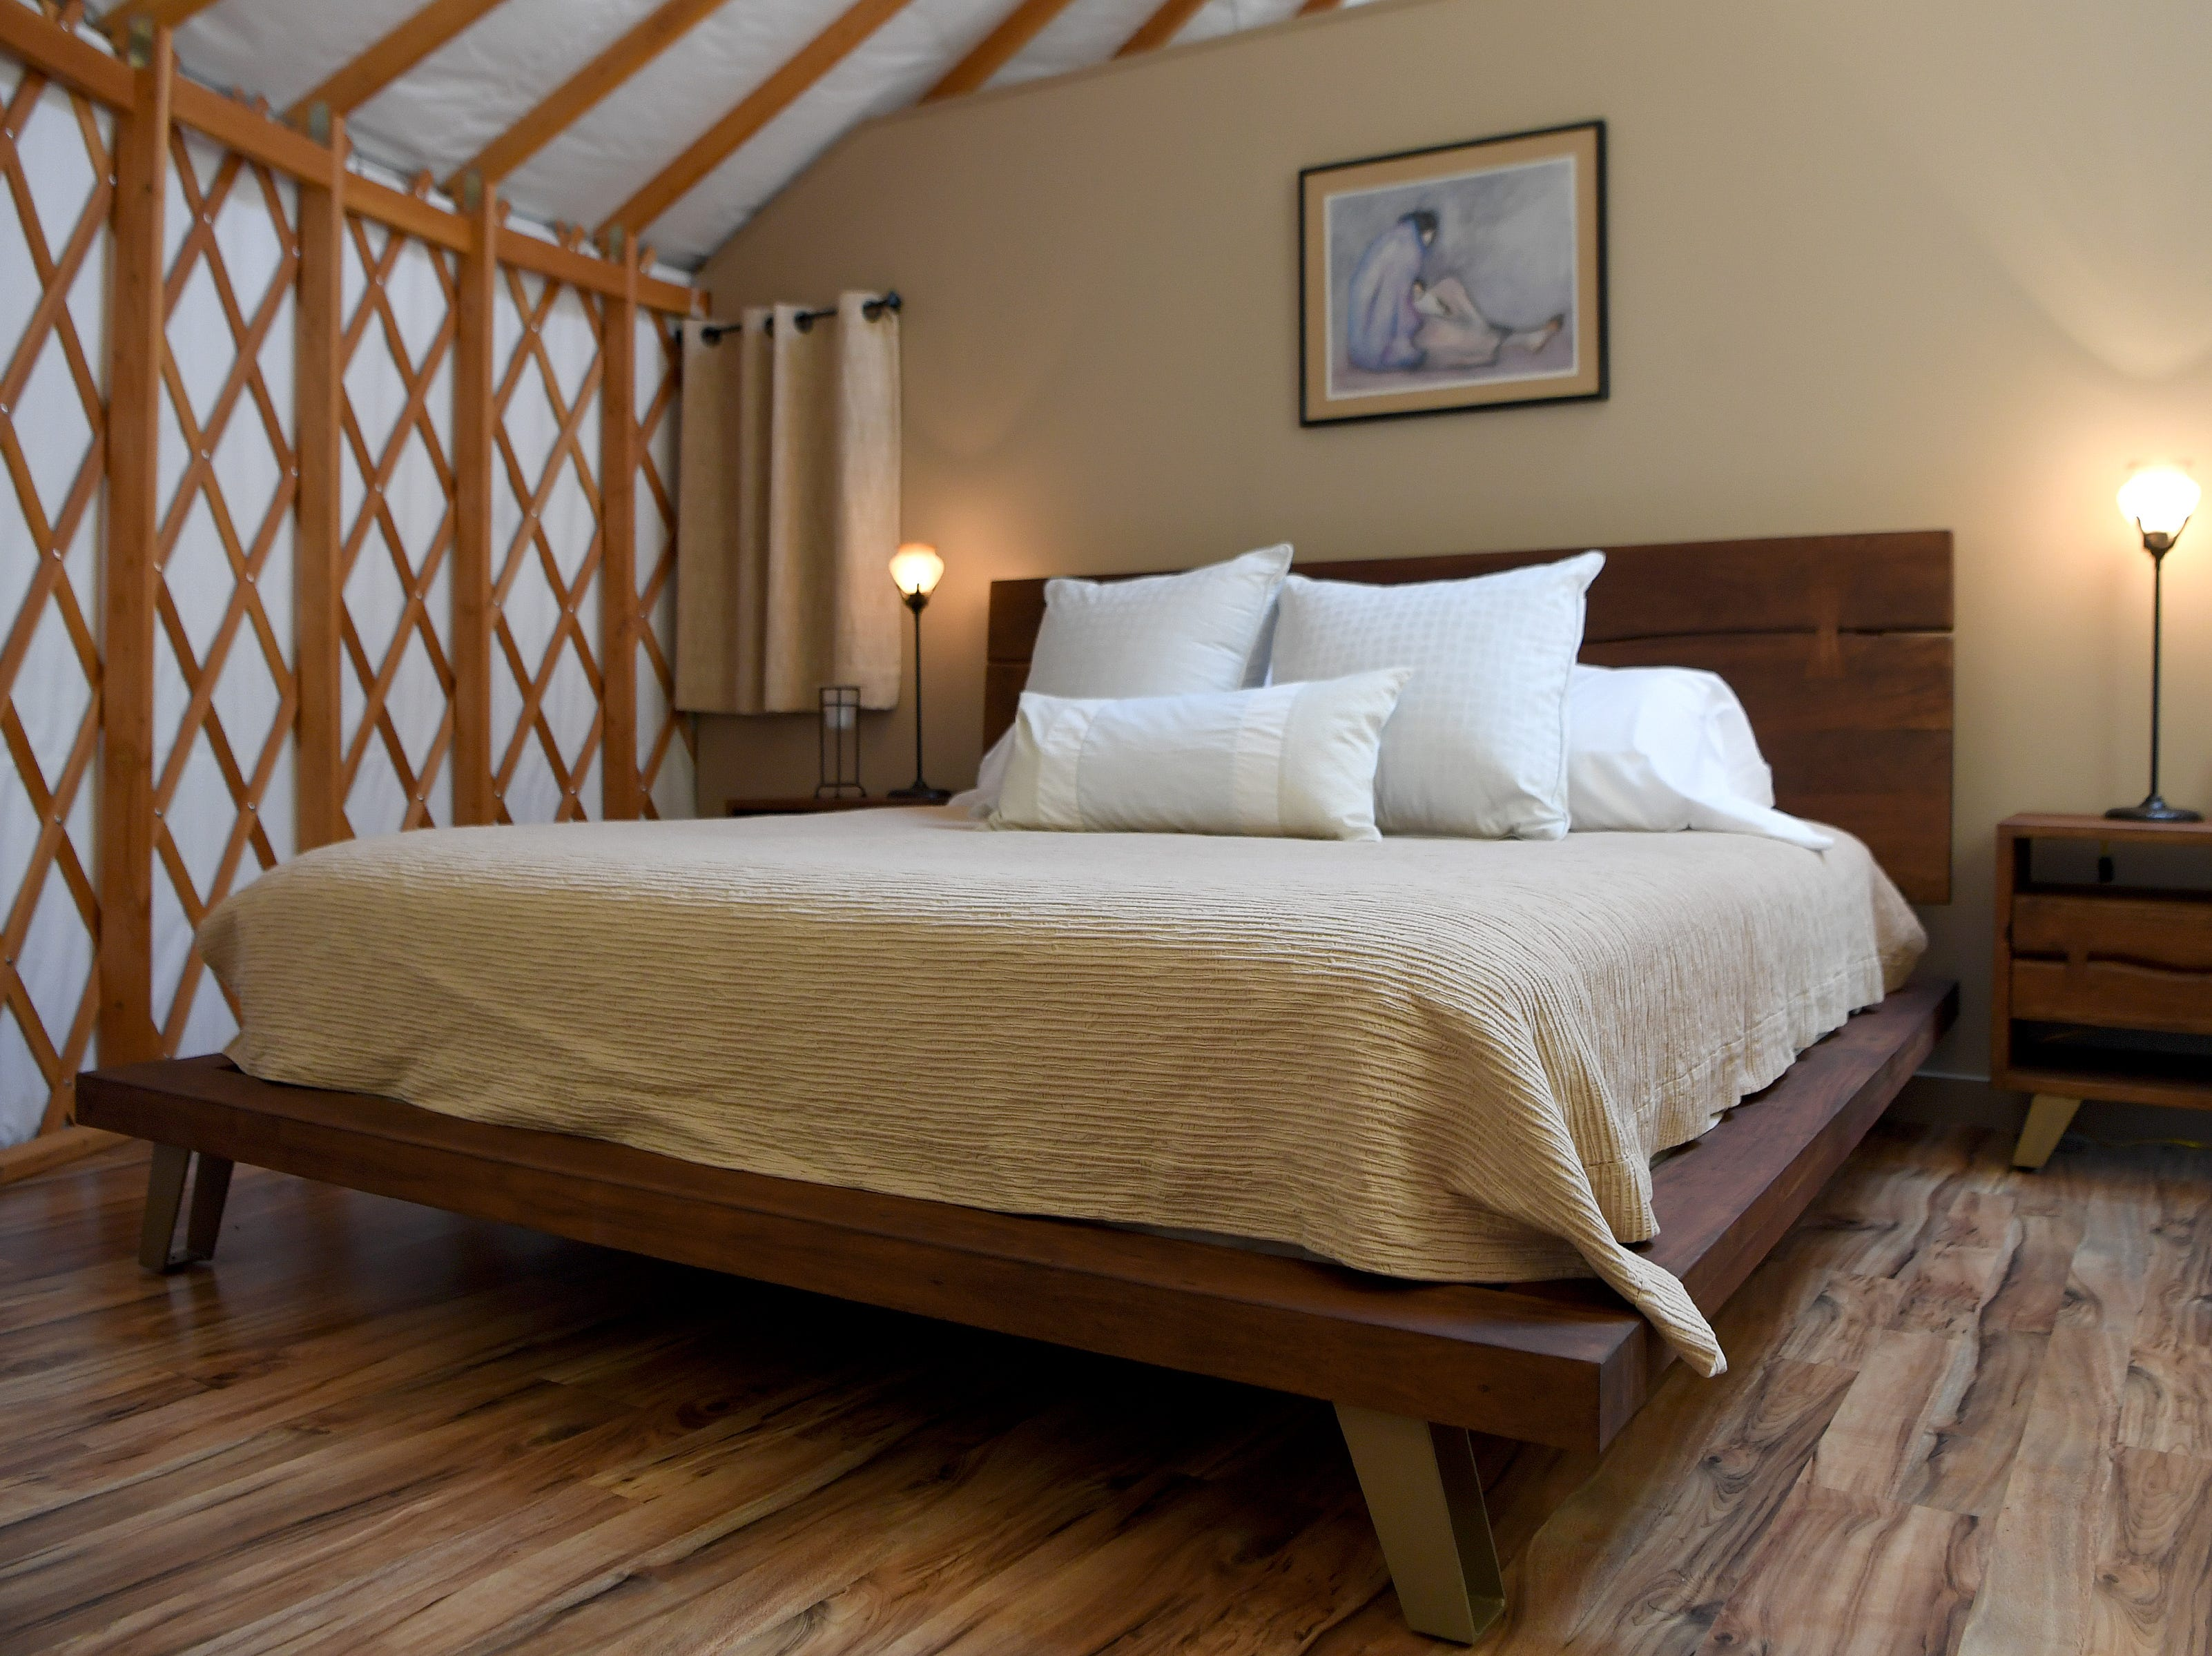 The Yin Yurt, an AirBnB rental on Ricardo Fernandez's property in Clyde, features a king-sized bed for guests in the partitioned bedroom. The yurt sleeps four with the addition of a pull-out sofa in the living room area.